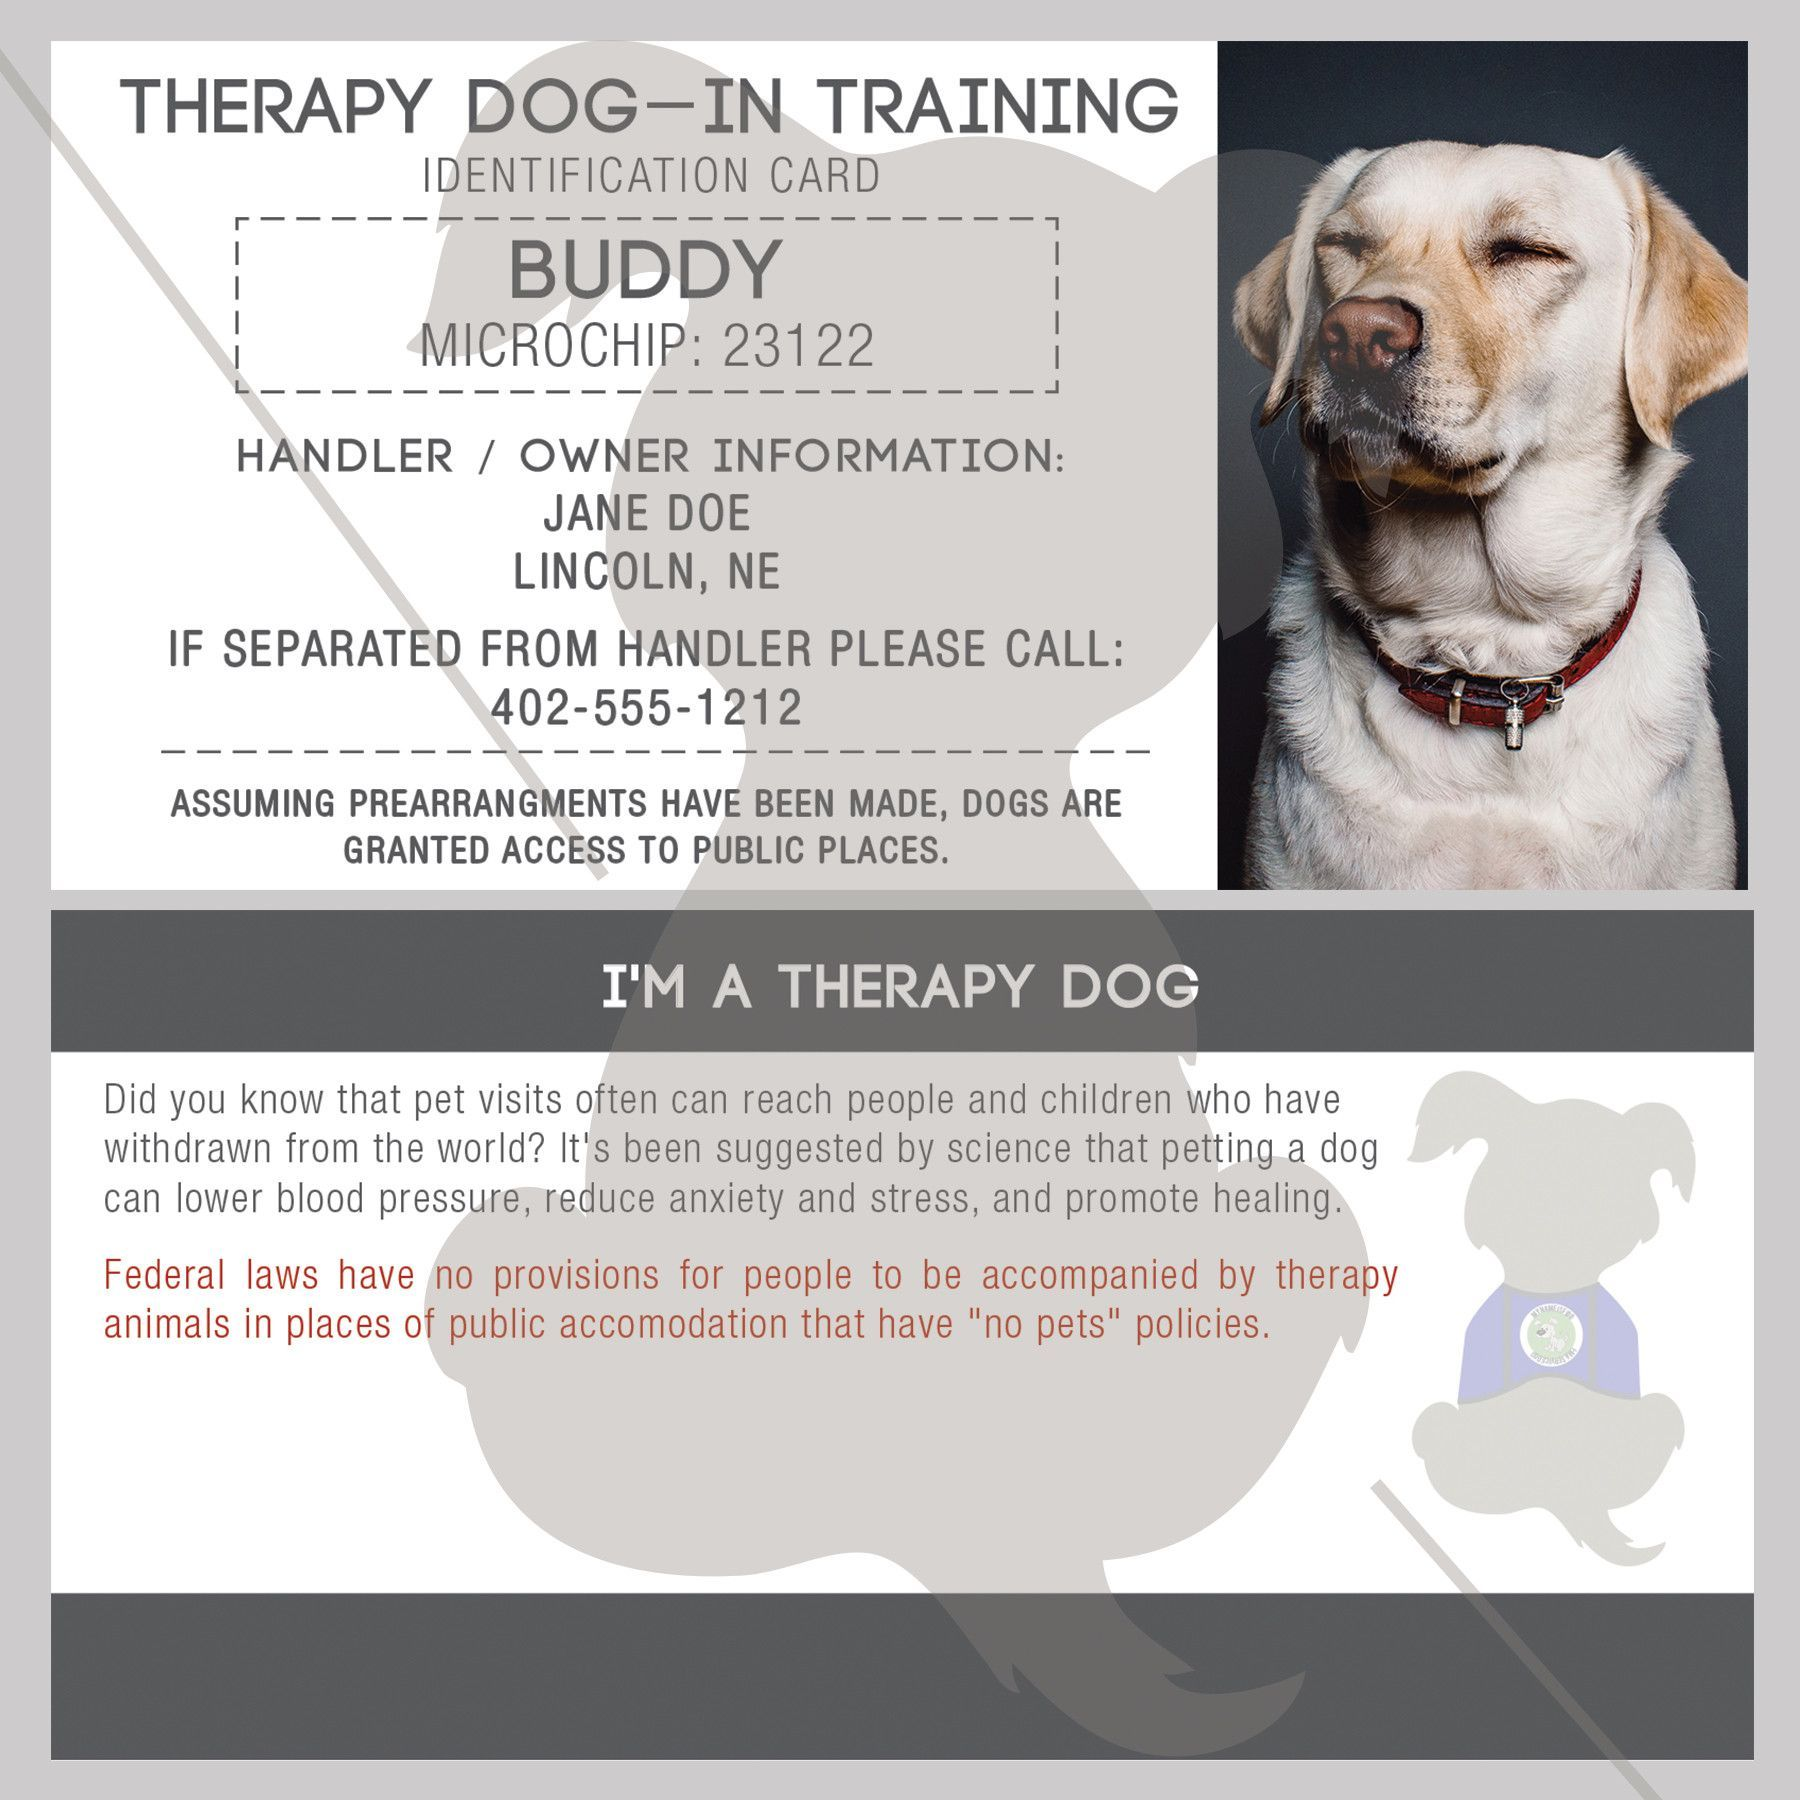 Id Card Therapy Dog In Training Therapy Dogs Service Dogs